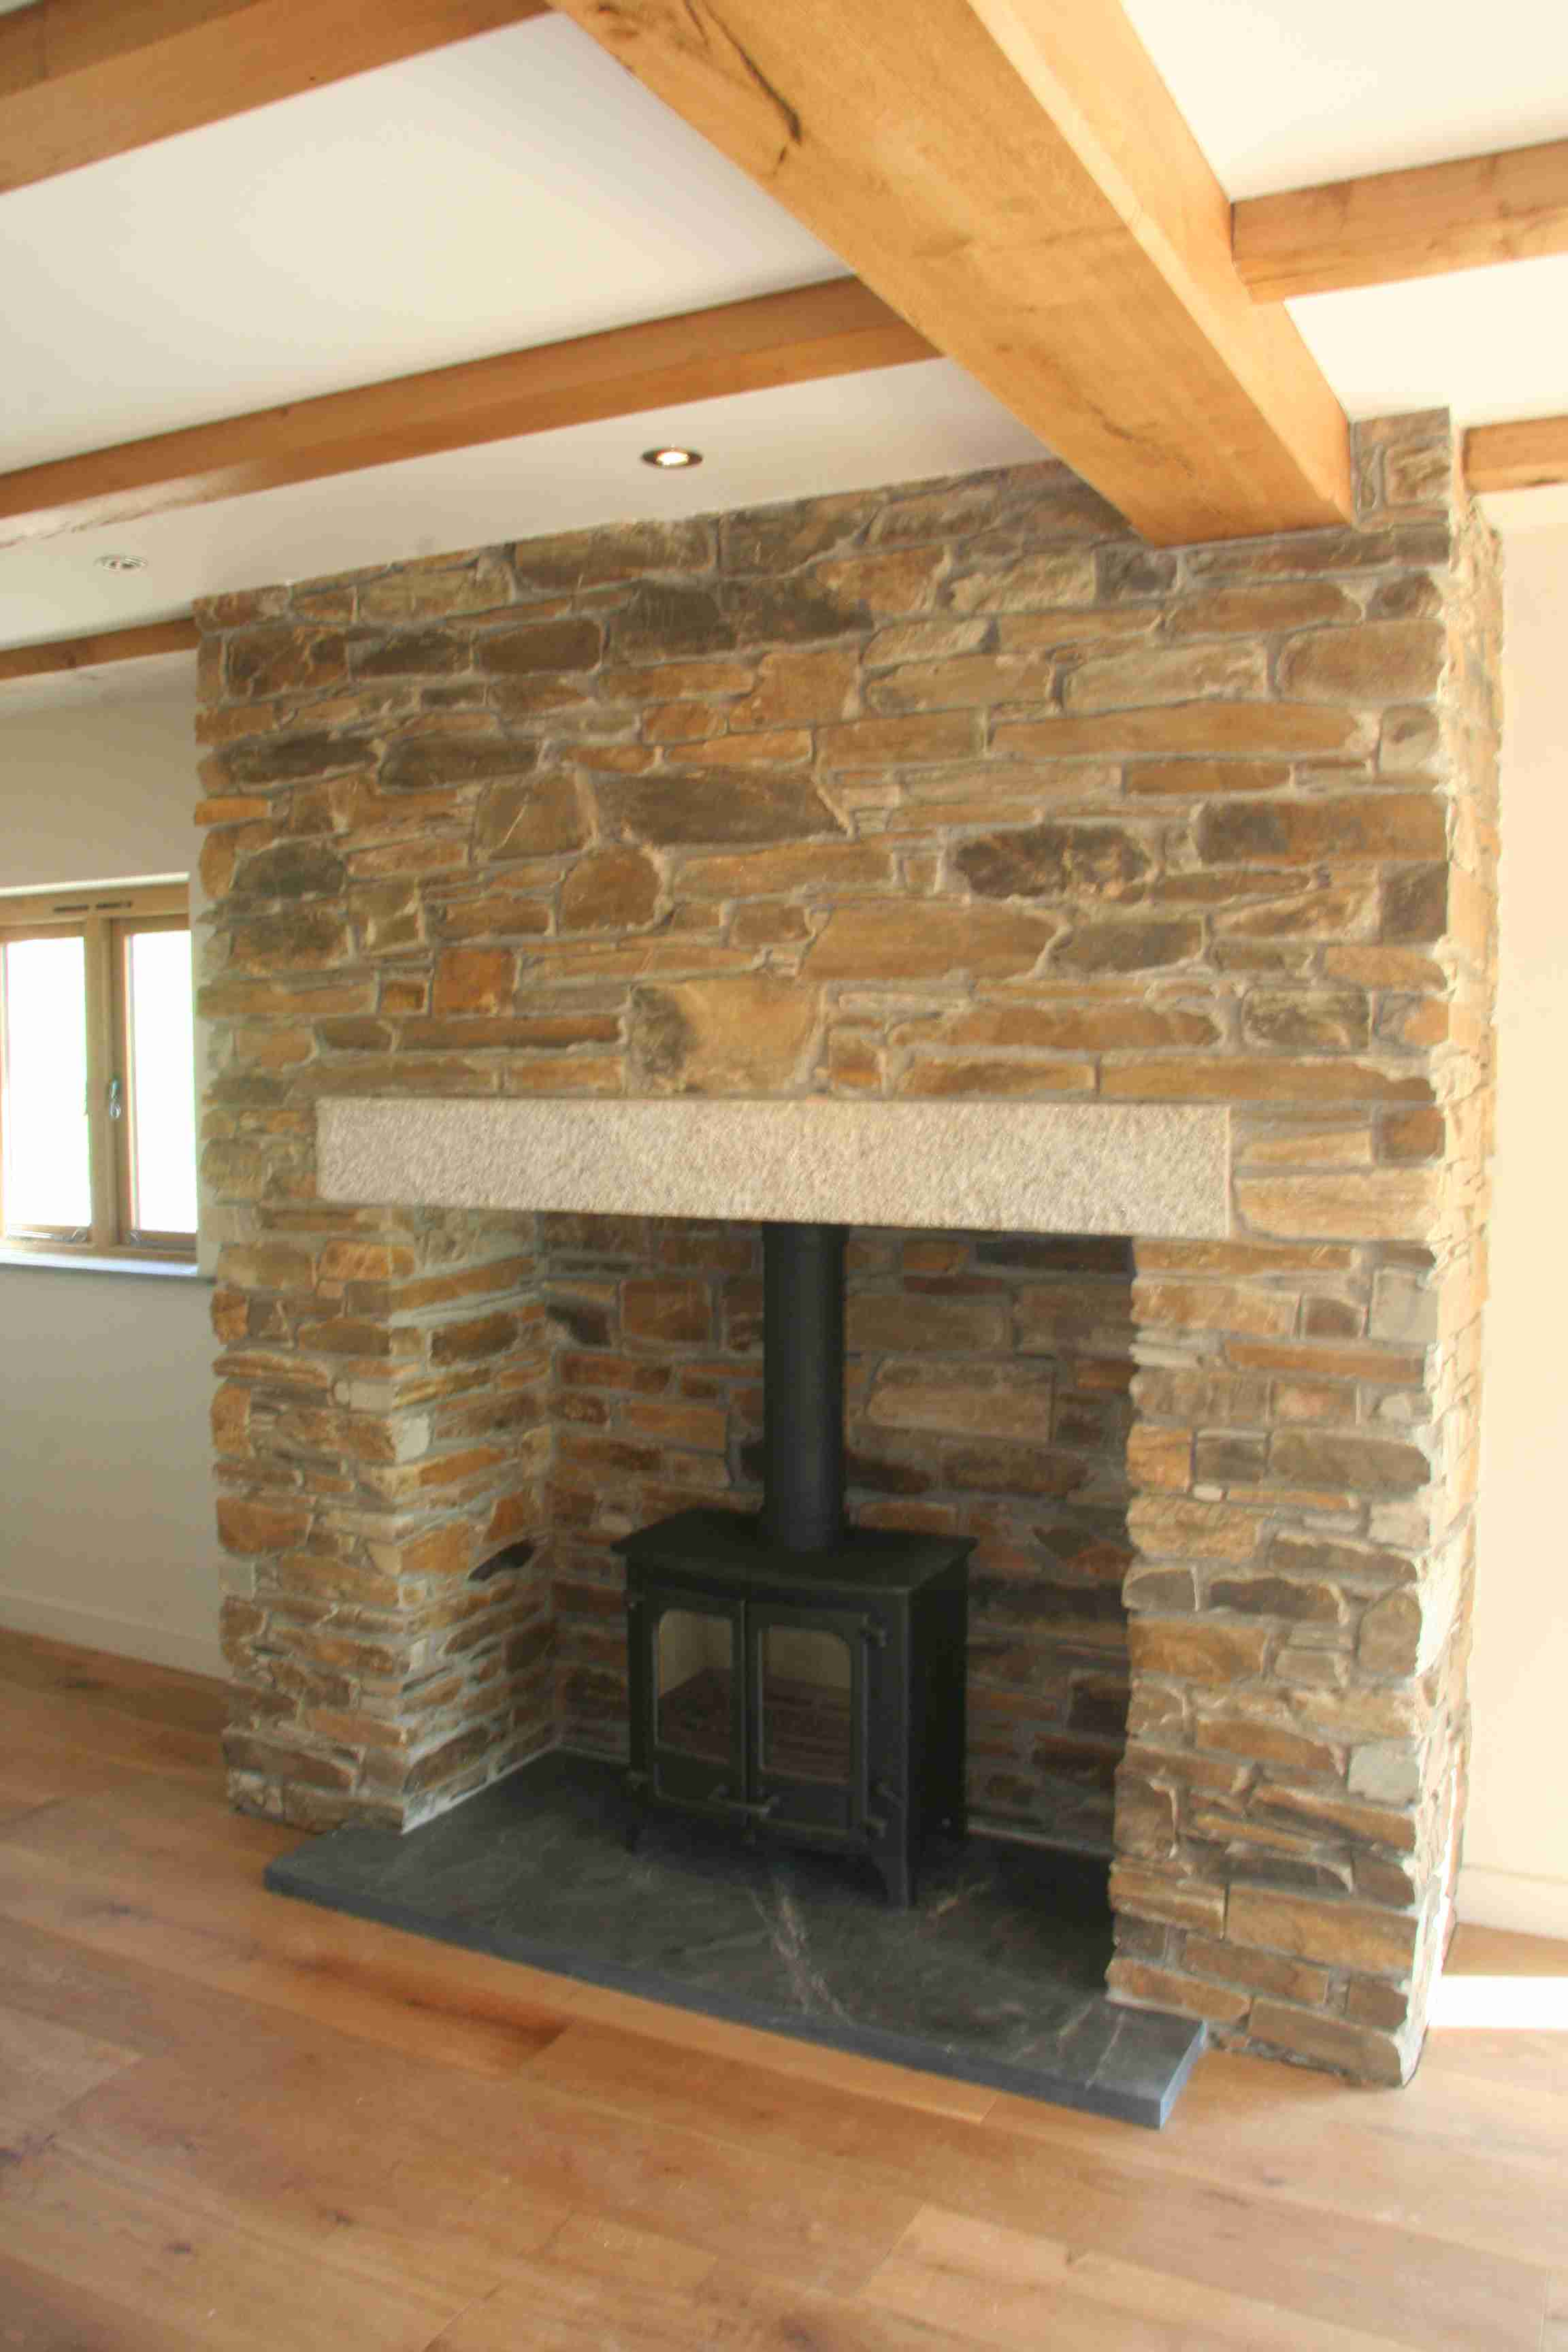 Cornish Stone Home Lantoom Quarry Suppliers Of Natural Cornish Slate And Granite Building Stone